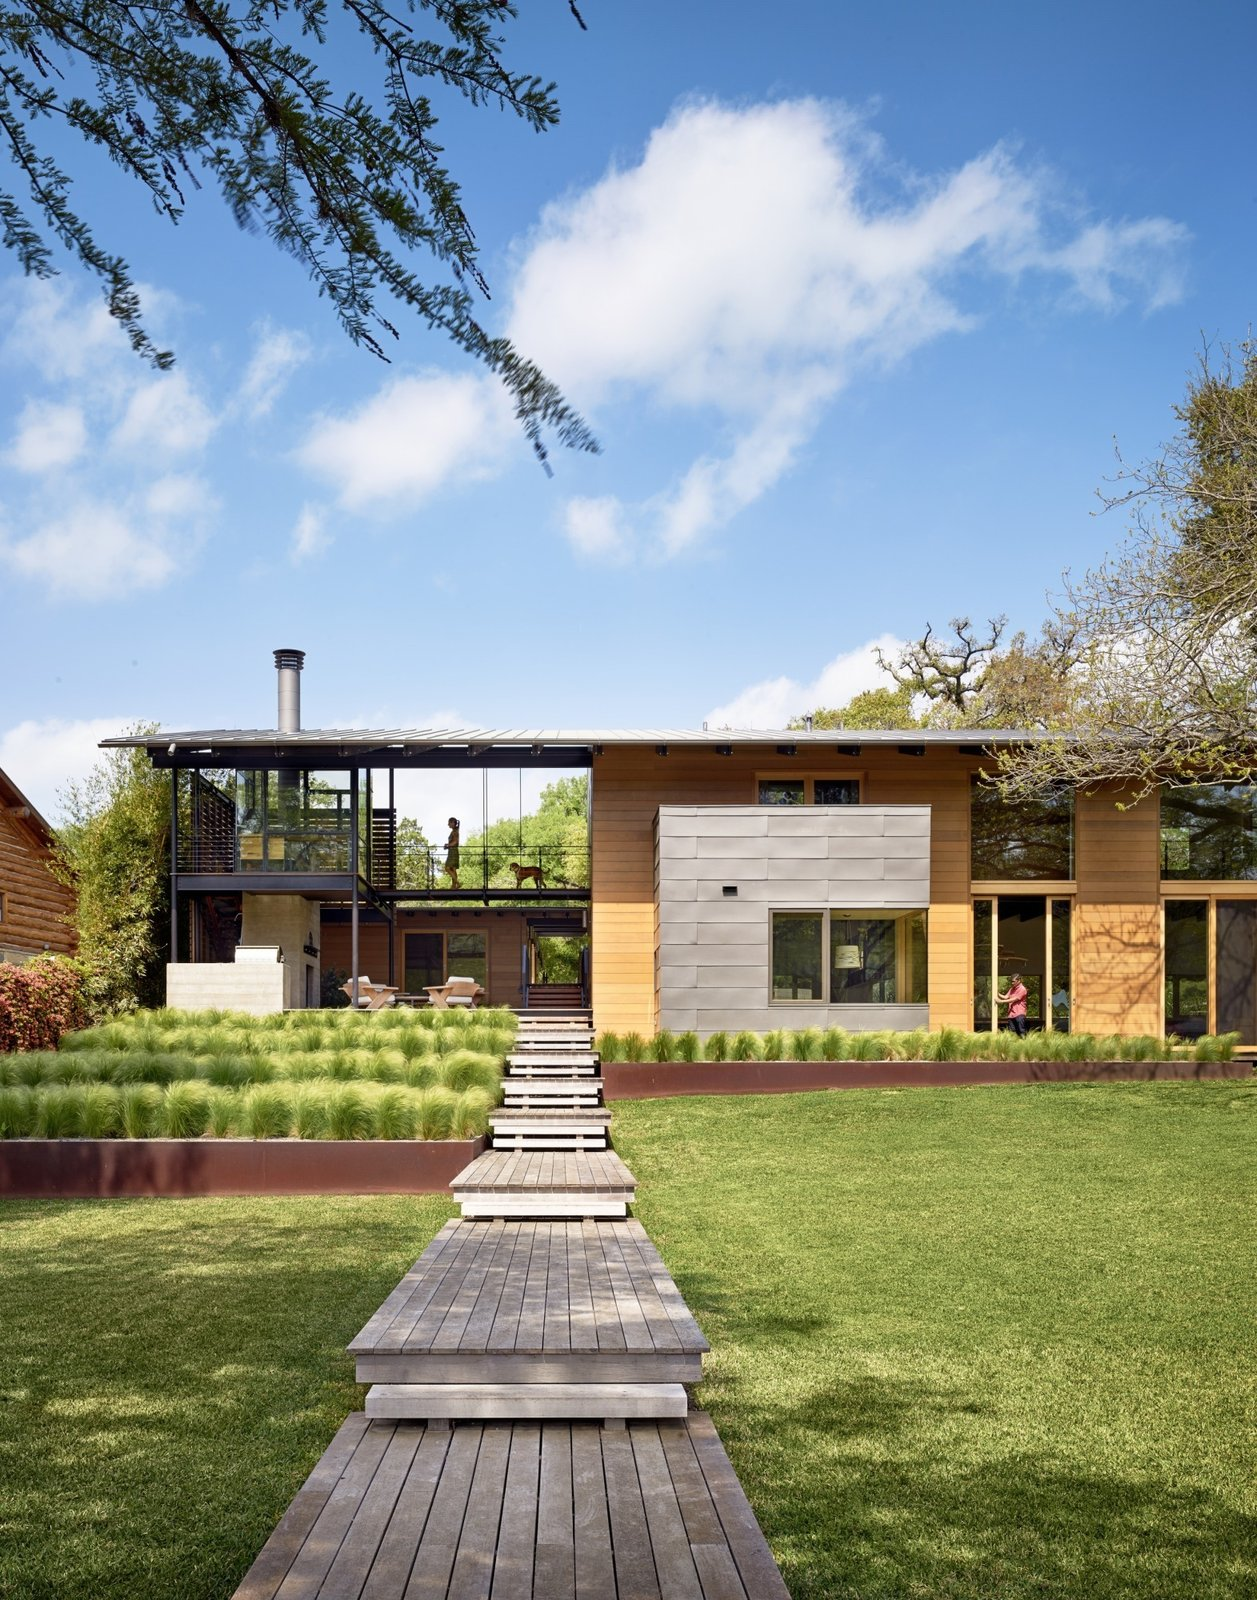 """""""Consistent with the lakefront cabin charm, the owners liked the idea of accessing much of the house from outdoor porches and walkways,"""" says architect Ted Flato. Supplies from Dynamic Architectural Windows and Doors bring light in to the home's covered spaces. Tagged: Exterior, House, Flat RoofLine, and Wood Siding Material.  Hog Pen Creek by Kelly Dawson"""